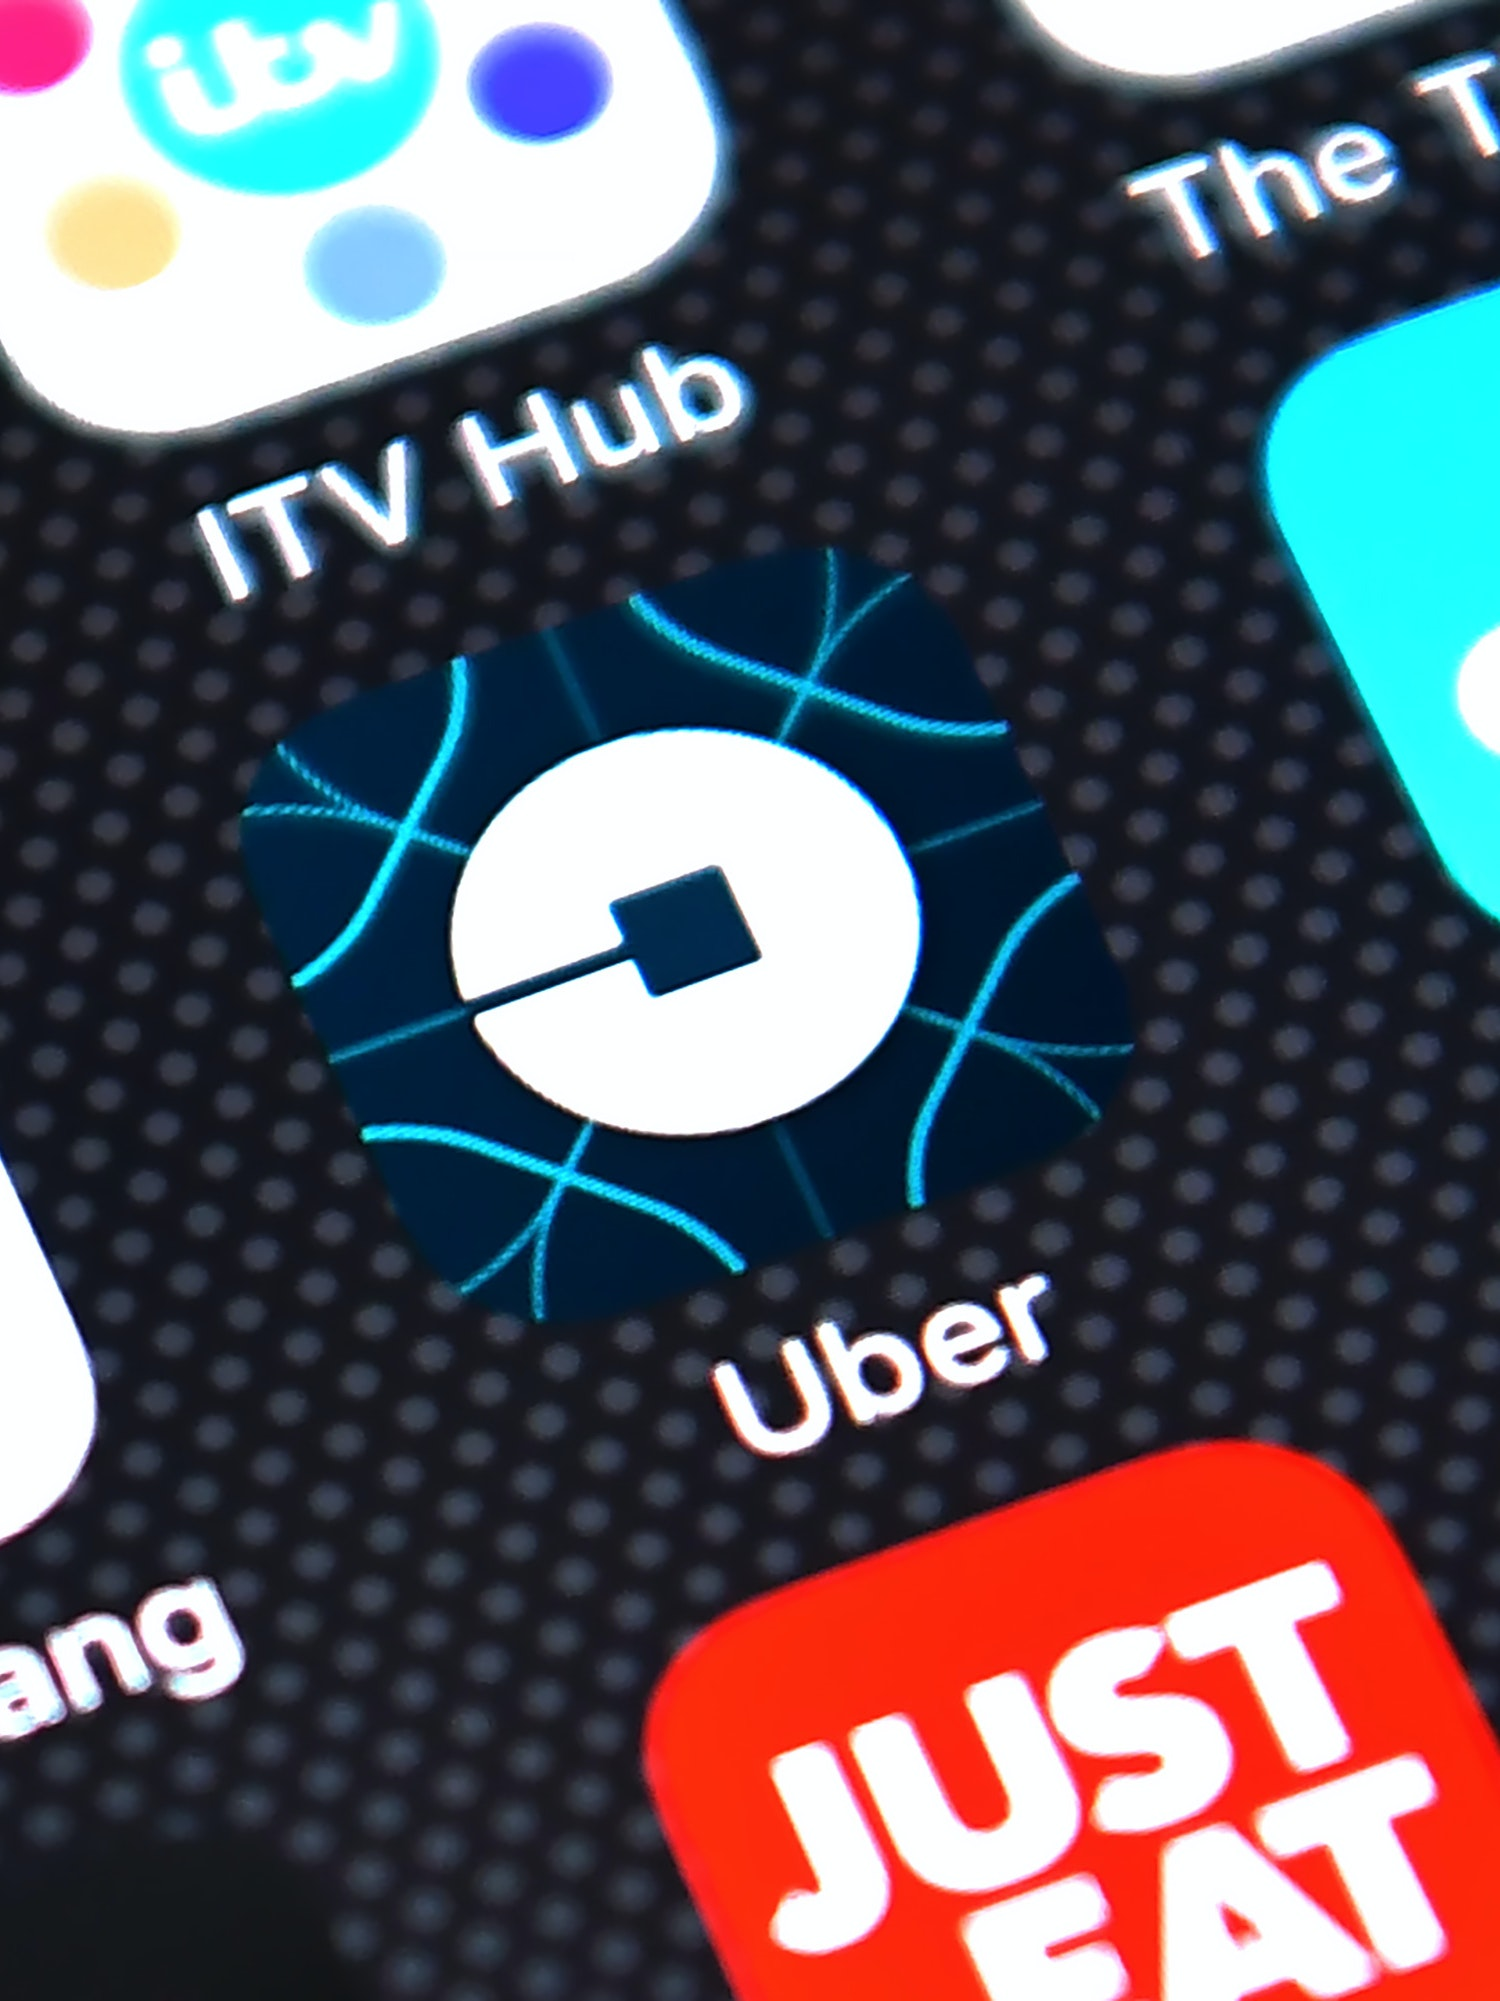 The Uber app logo is displayed on an iPhone on August 3, 2016 in London, England.